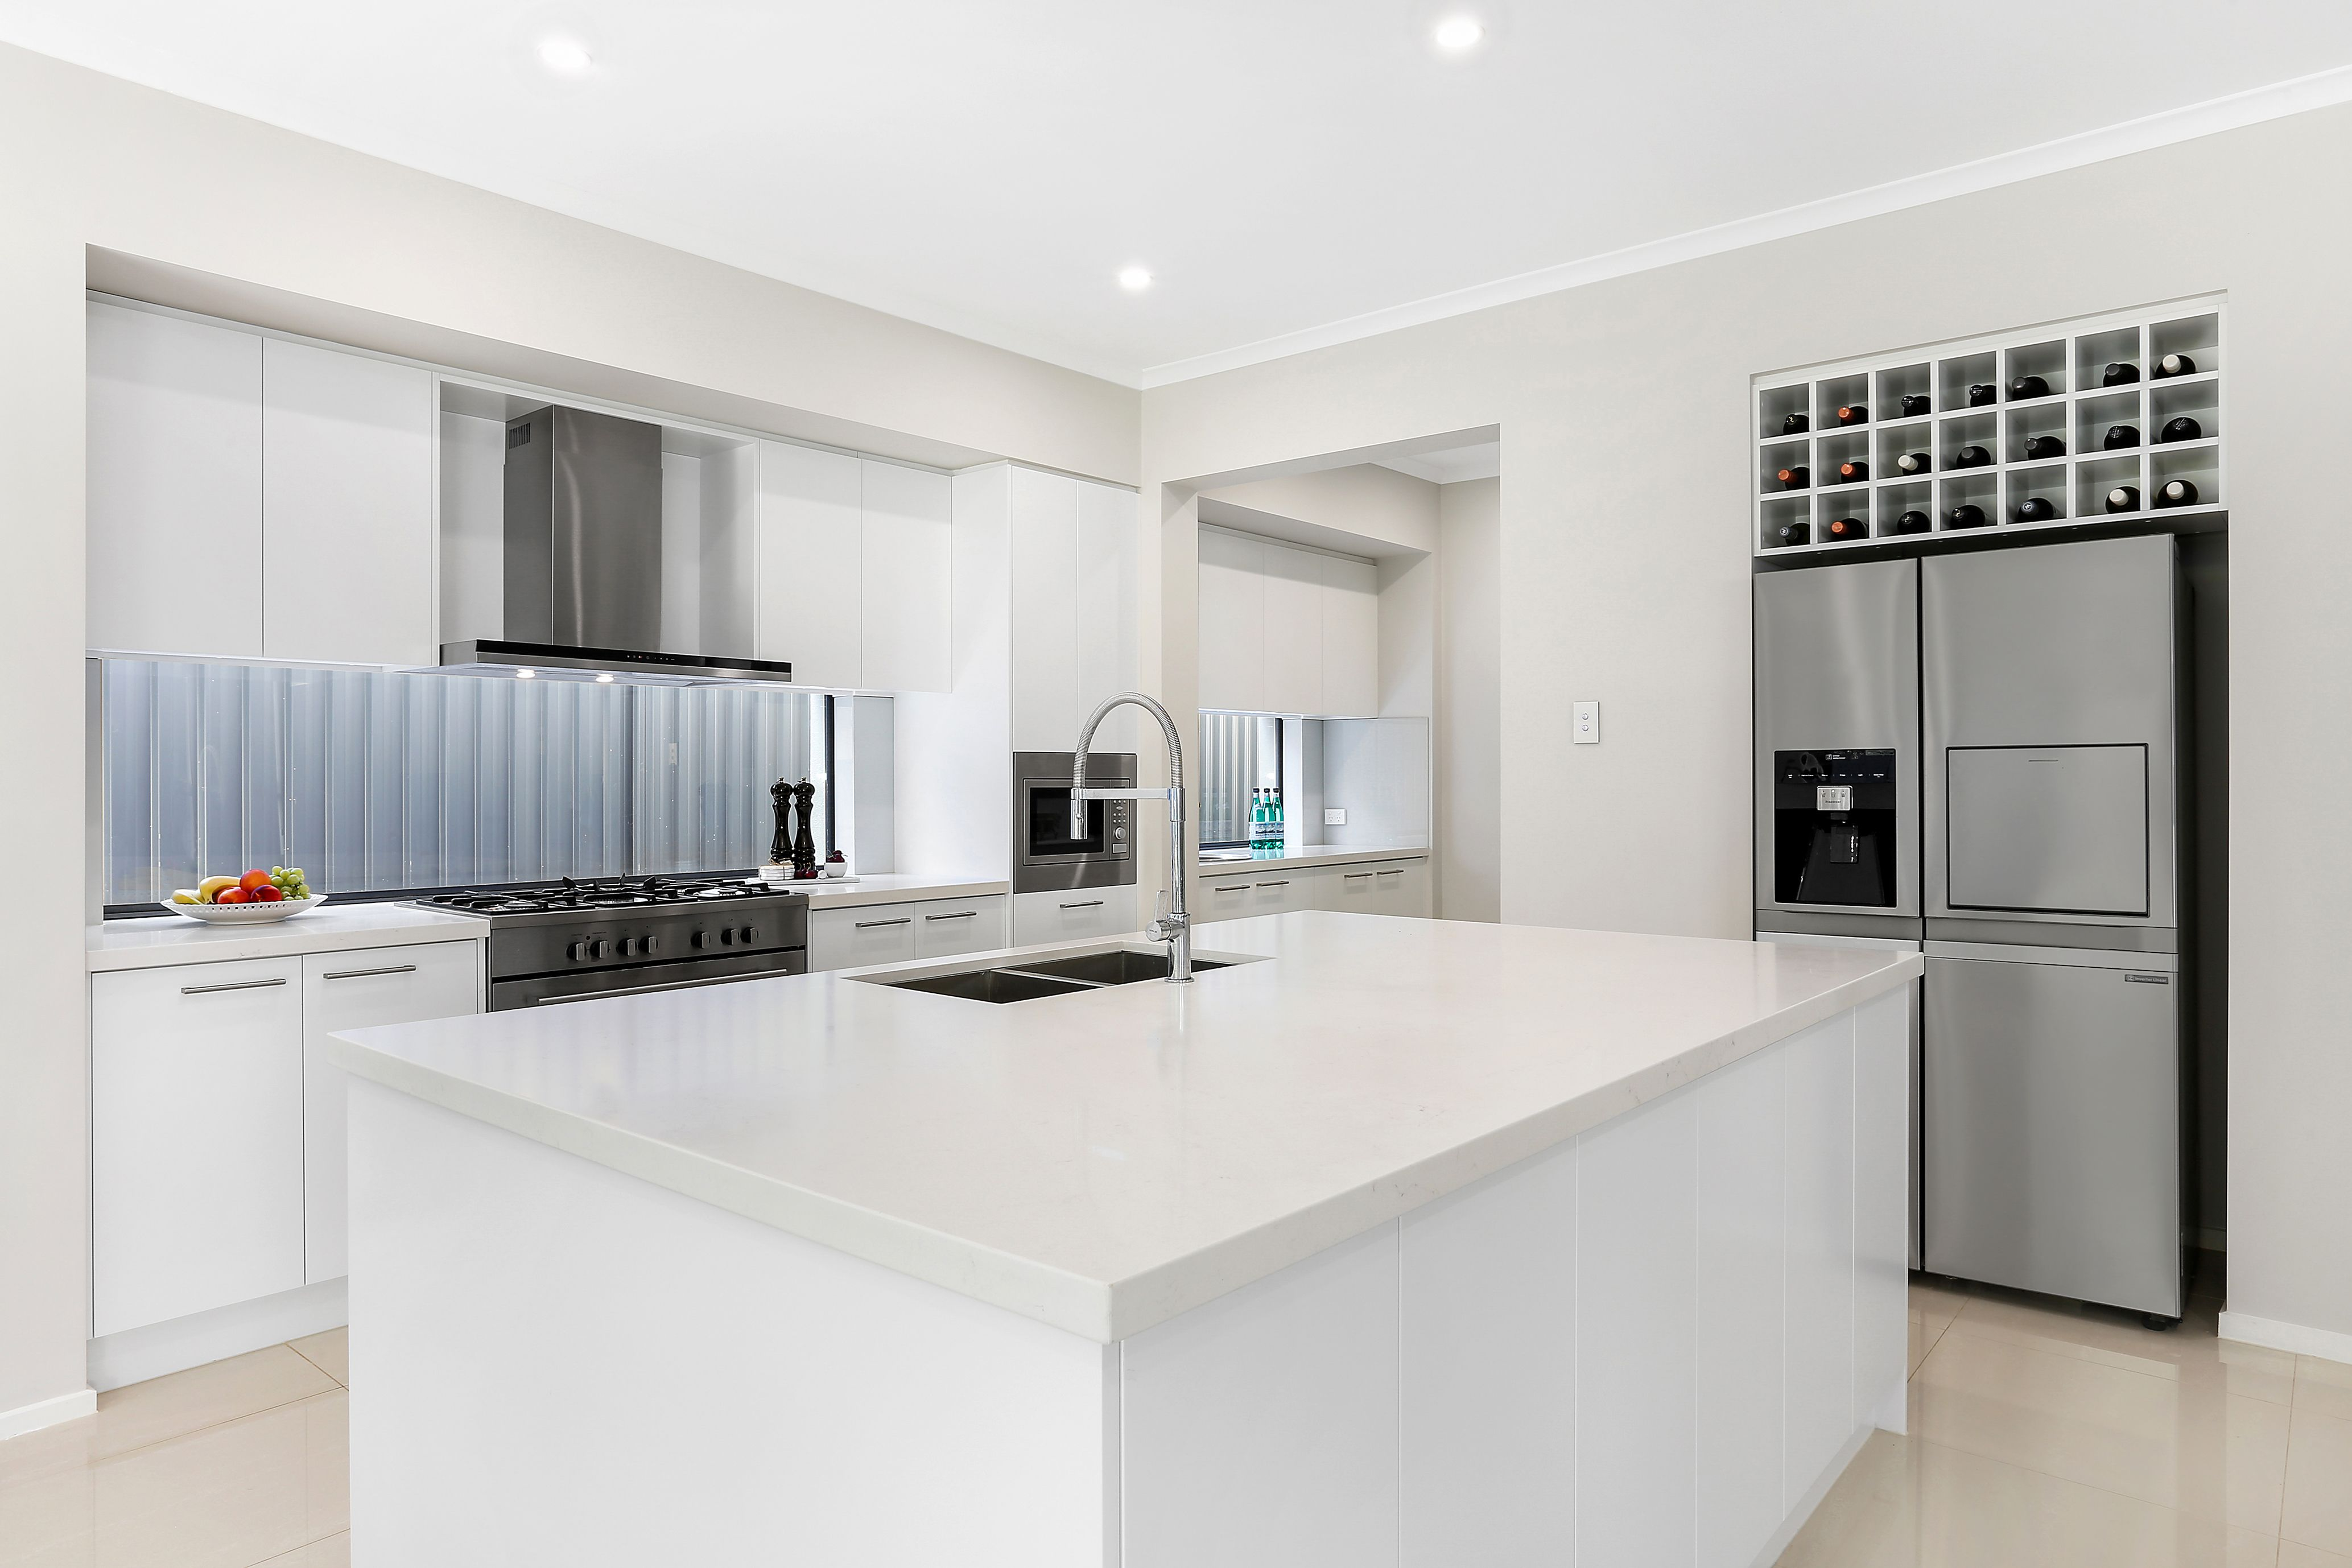 66 Broughton Road, Strathfield NSW 2135